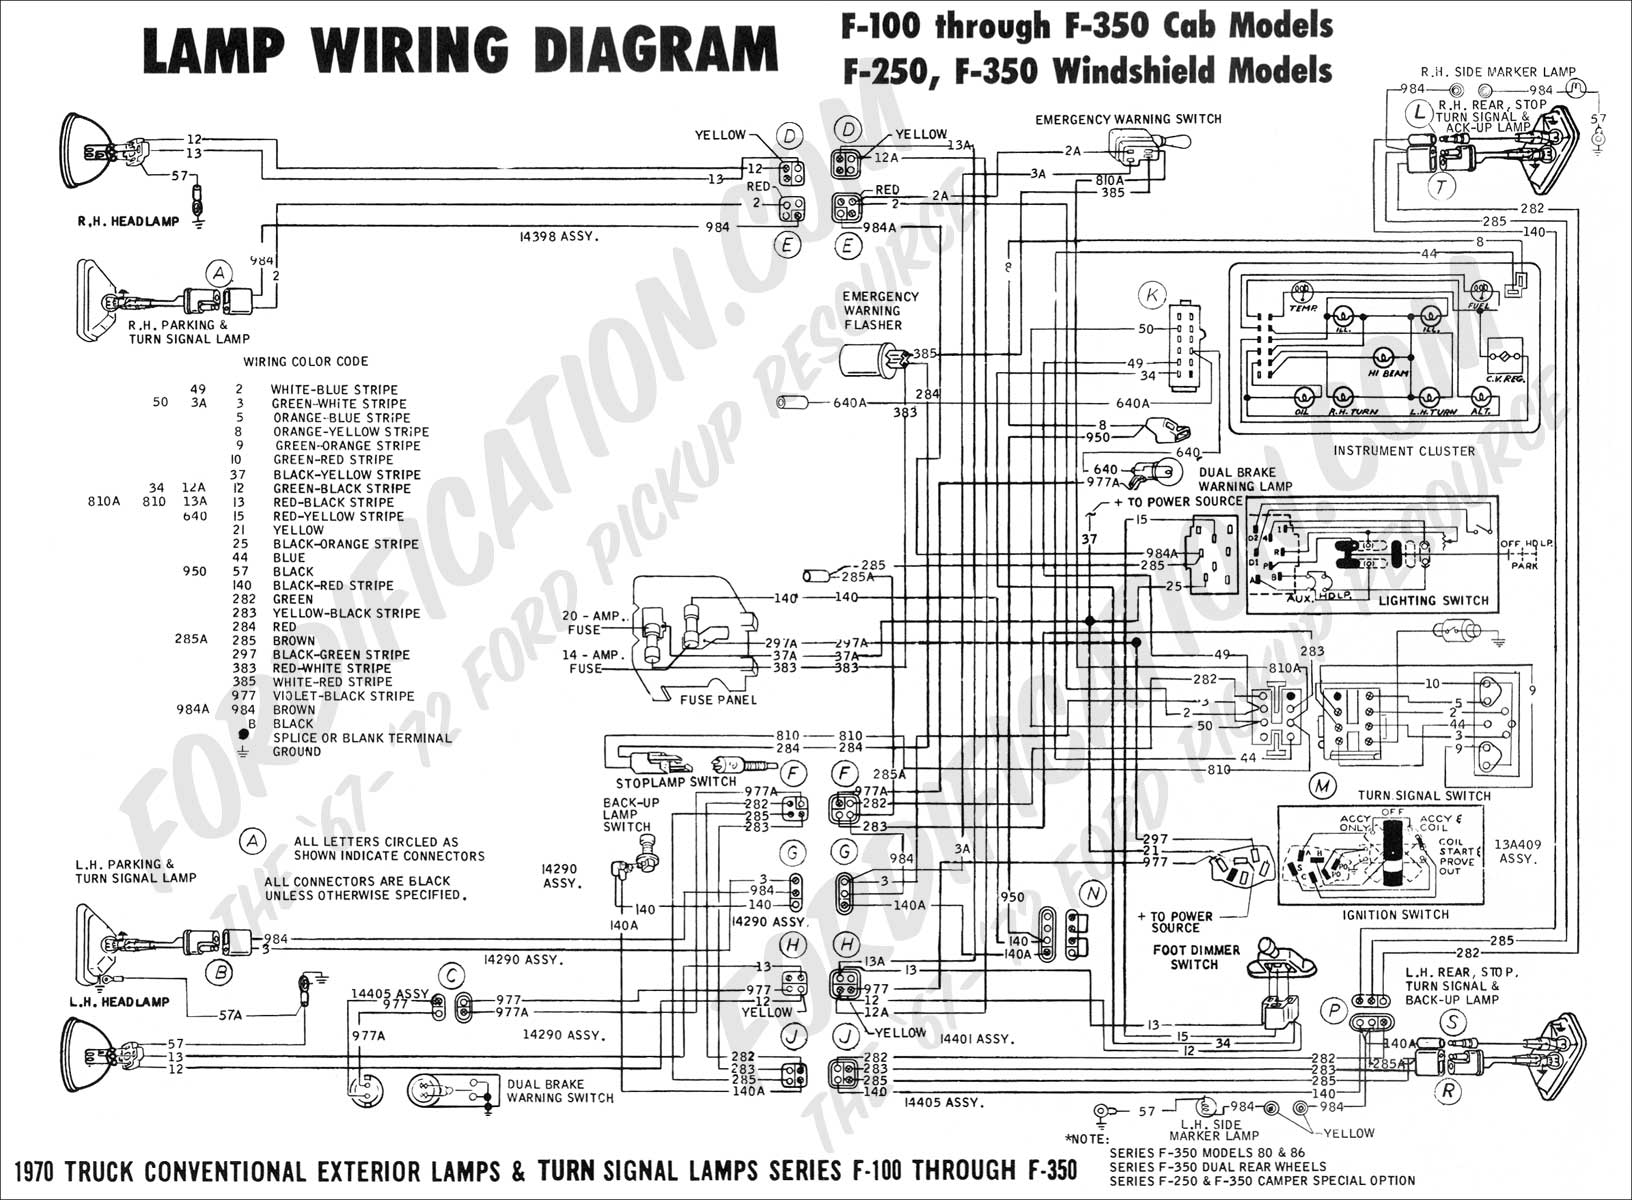 wiring diagram for 1999 ford f 250 wiring diagram rows 1999 chevrolet silverado wiring diagram 1999 ford f 250 wiring diagram #1